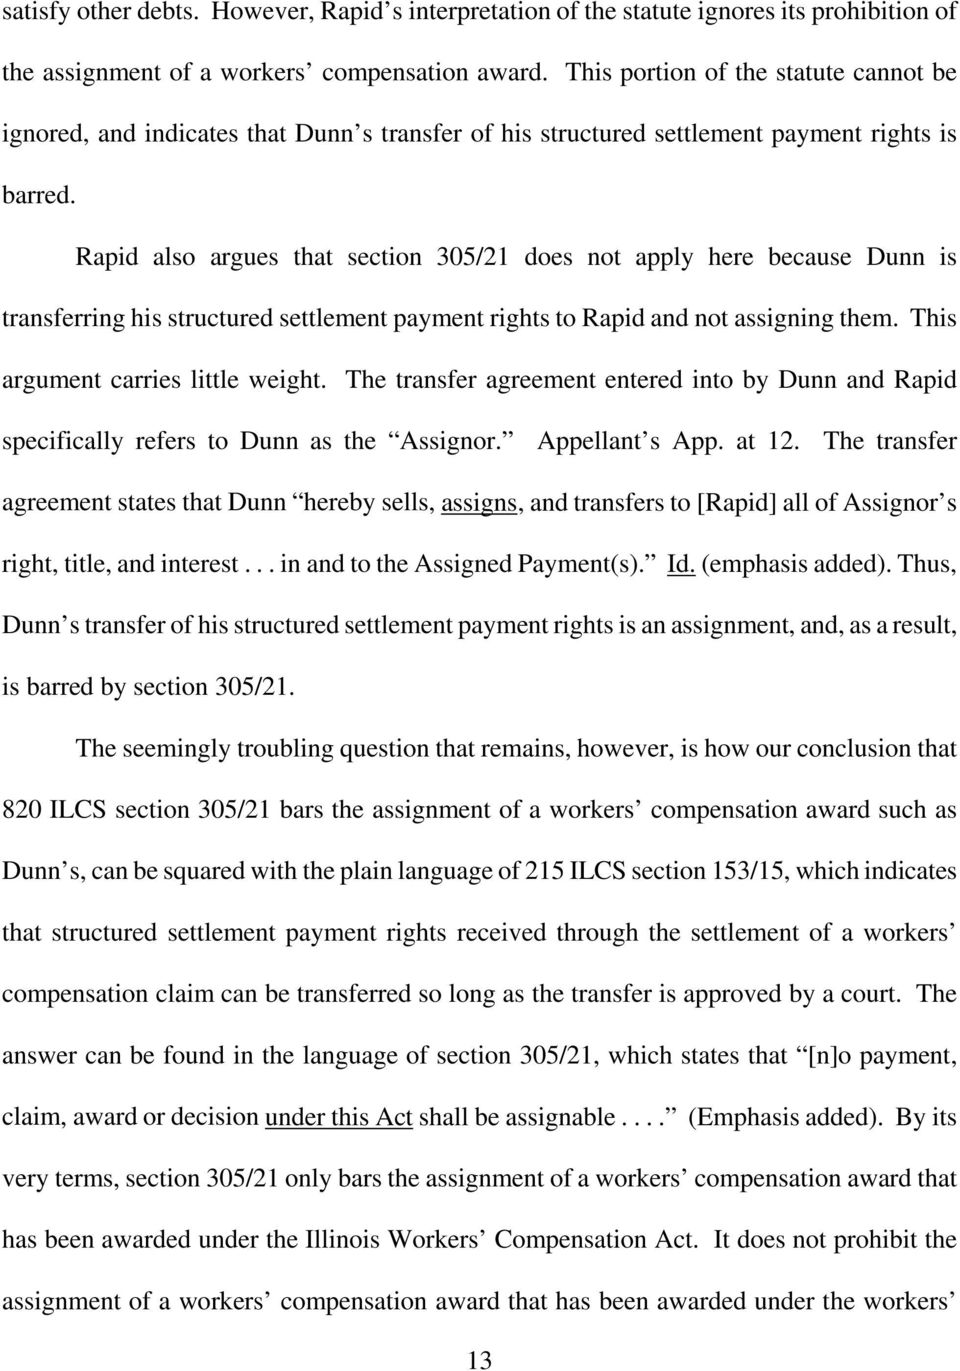 Rapid also argues that section 305/21 does not apply here because Dunn is transferring his structured settlement payment rights to Rapid and not assigning them. This argument carries little weight.